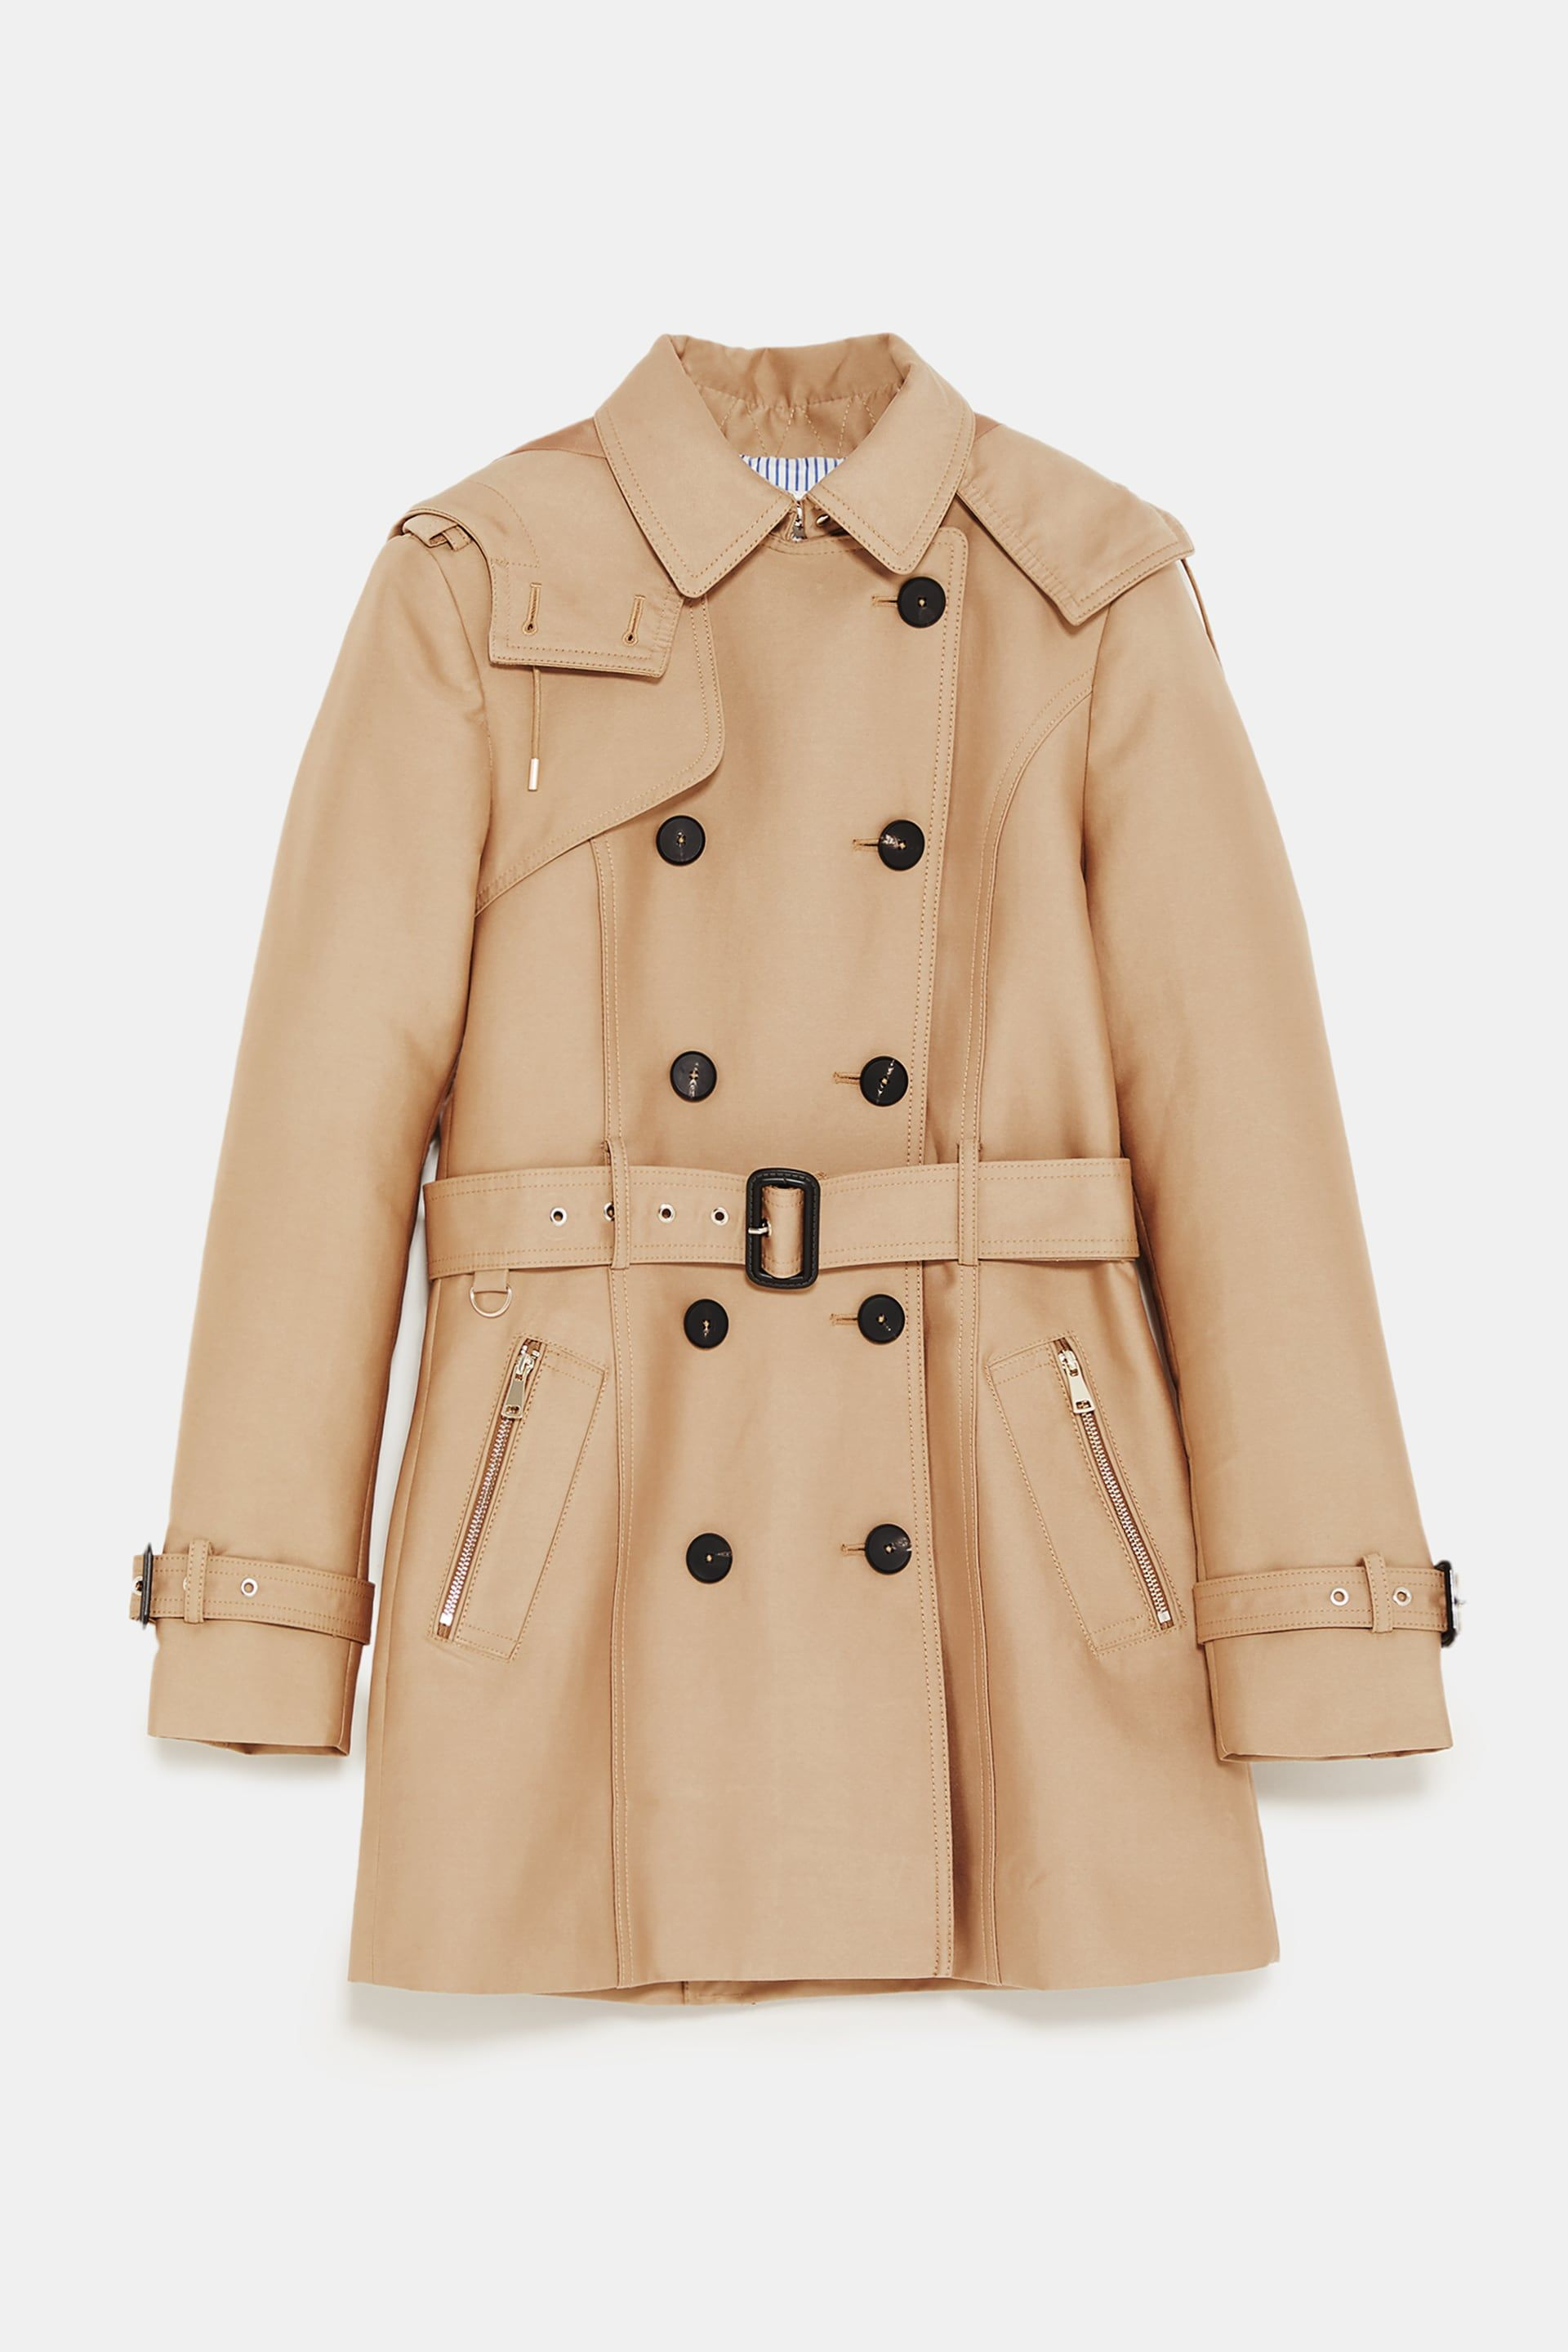 Image 8 of HOODED TRENCH from Zara Hooded Trench Coat 412ddacc36a53